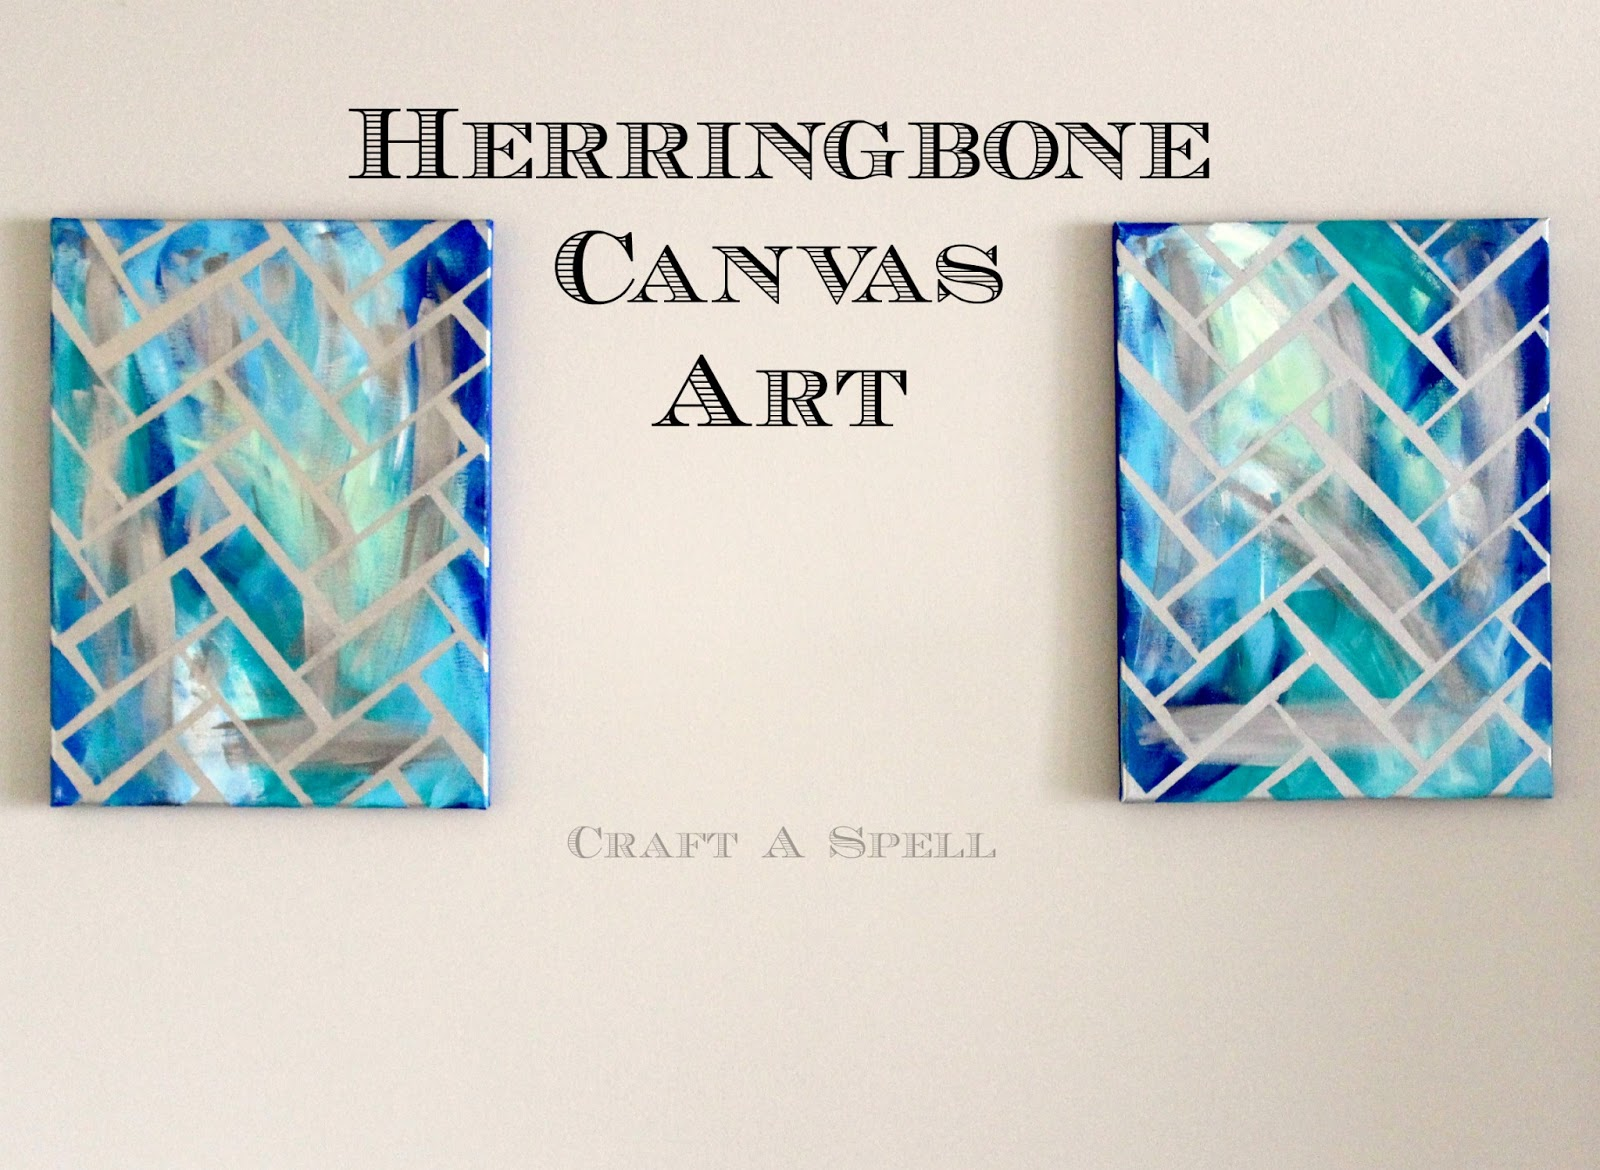 Craft a spell diy herringbone canvas art diy herringbone canvas art solutioingenieria Image collections